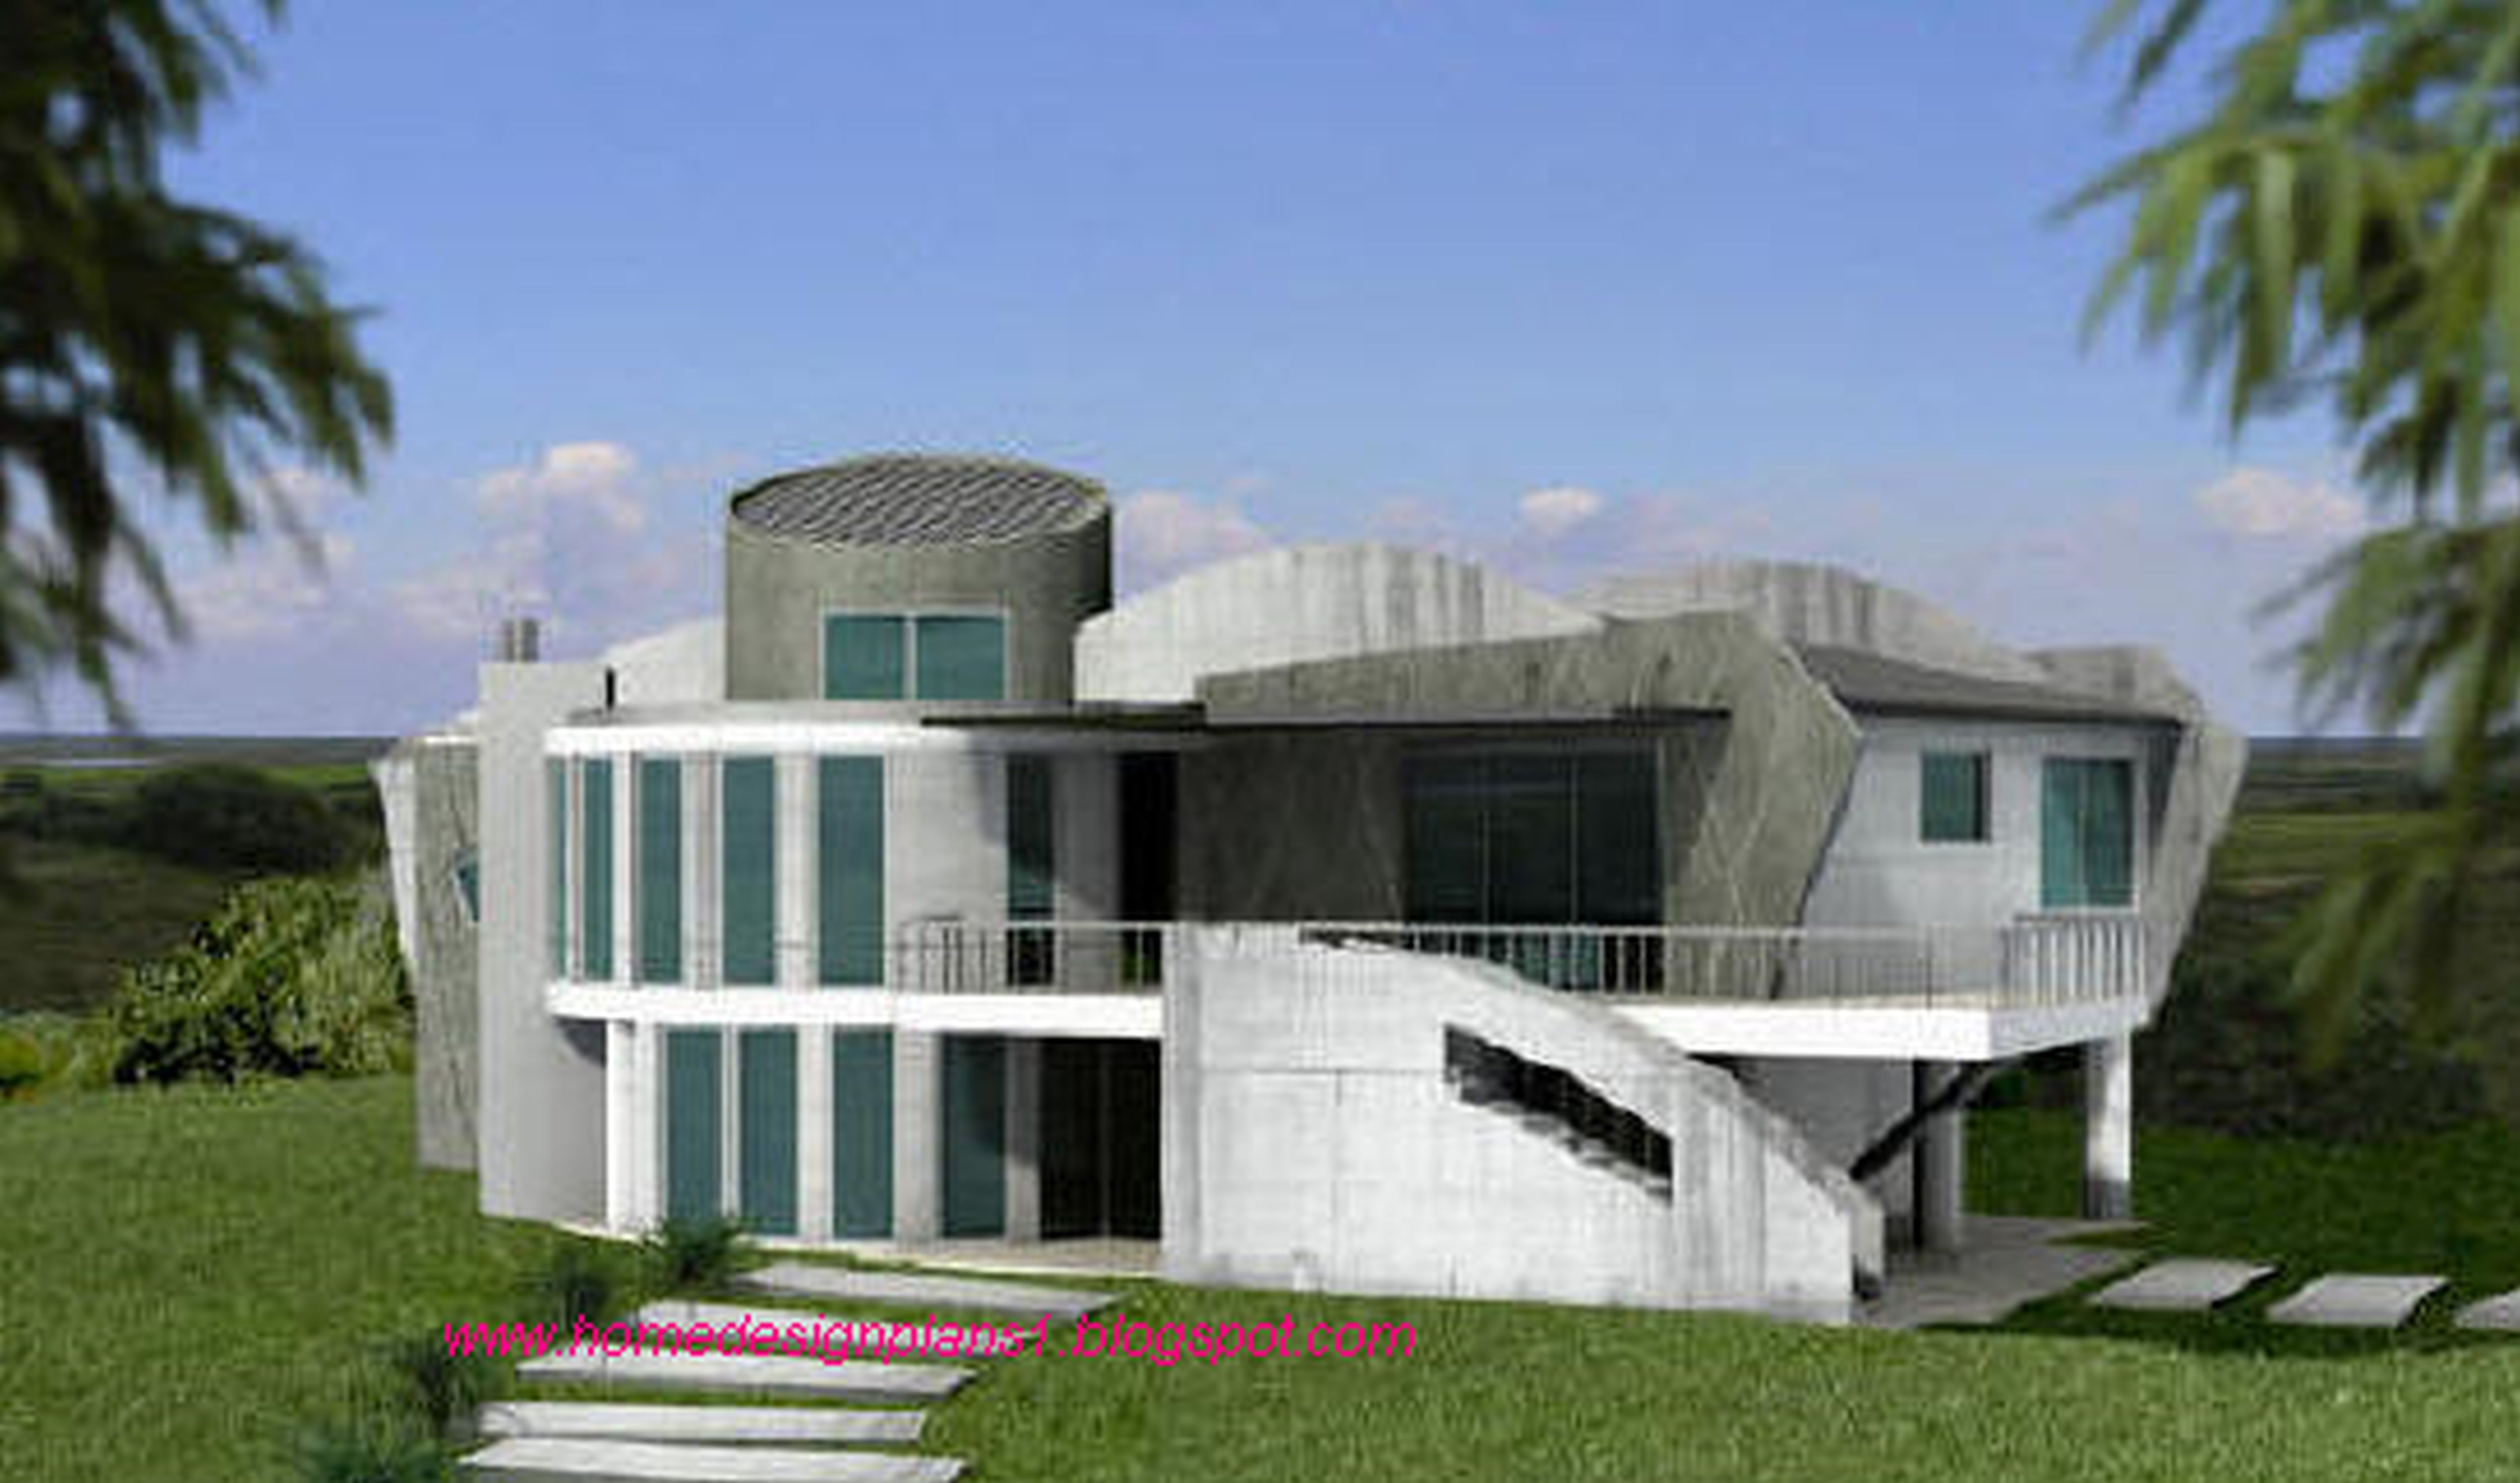 Modern Contemporary Luxury Home plans, Post Modern Custom House Architect,  Green design, Energy efficient blueprints